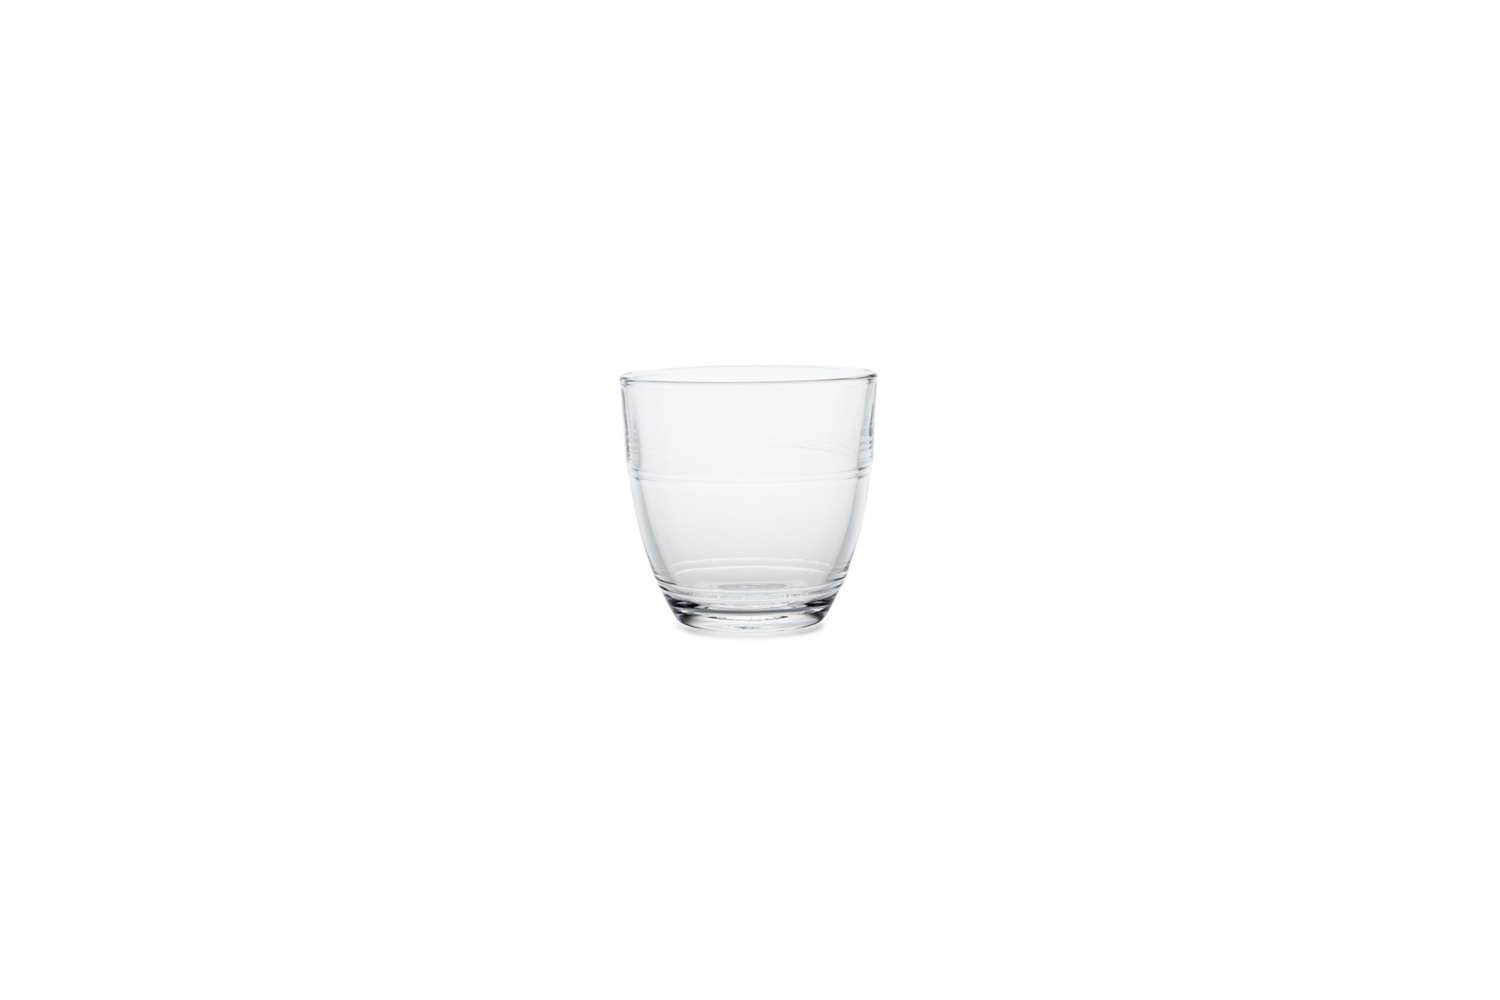 Made in France (and virtually indestructible), the Gigogne Glass by Duralex is available as a set of loading=